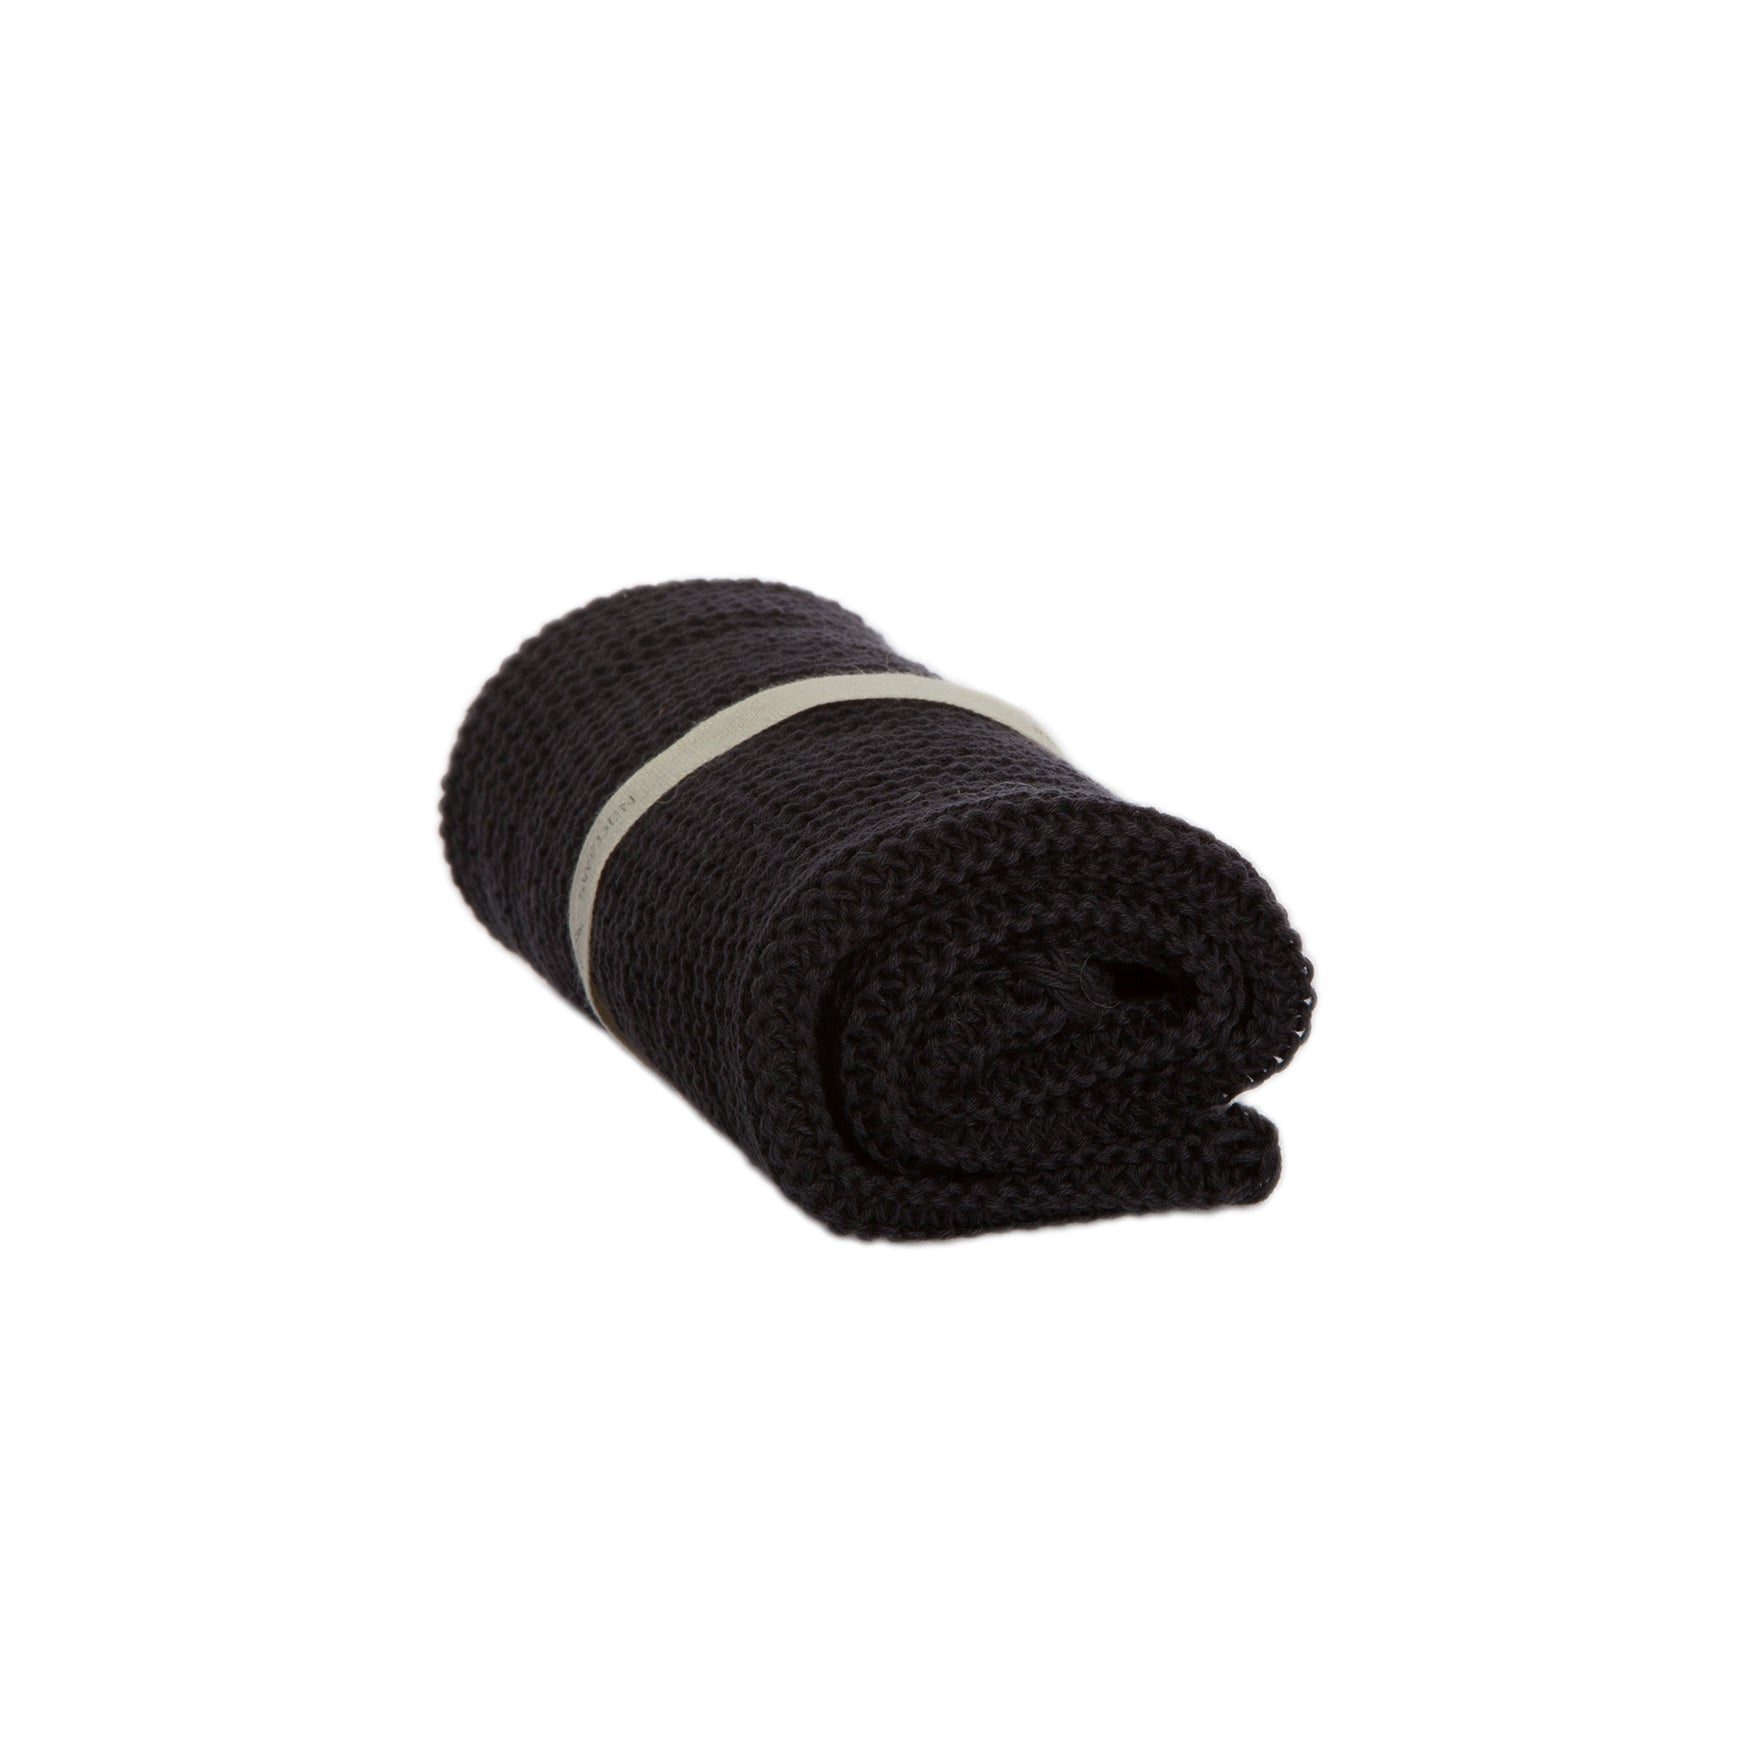 Organic Knitted Cotton Wash Cloth | Dark Grey - Noli